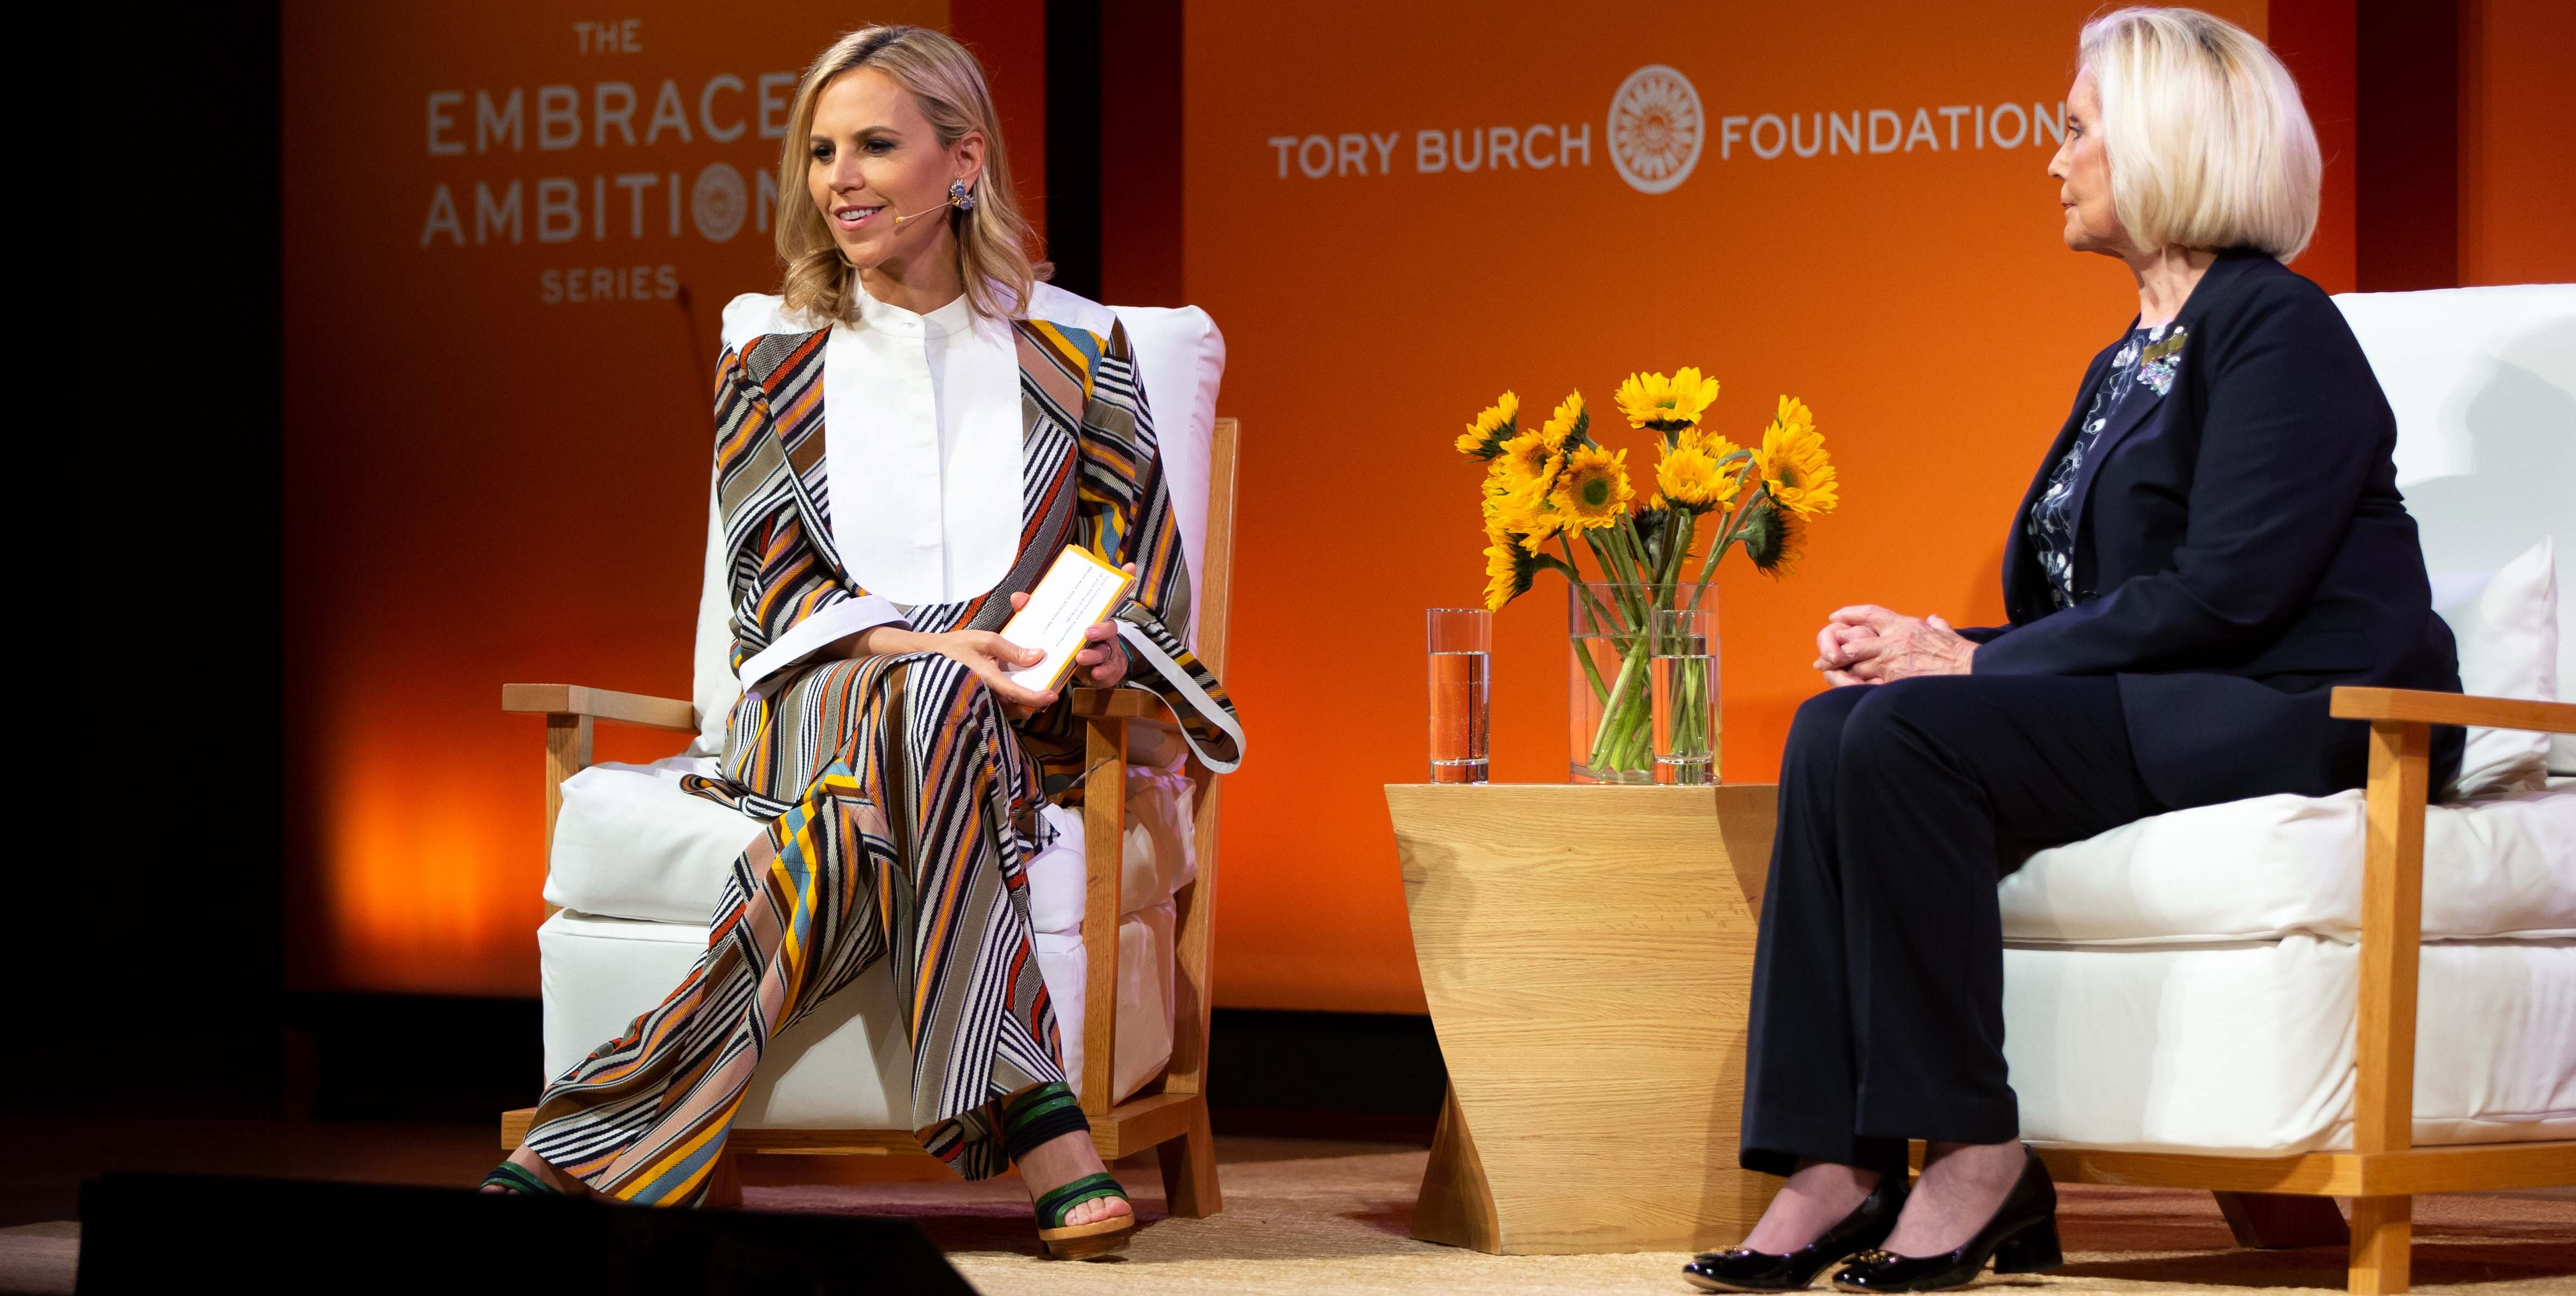 In celebration of Women's History Month, the Tory Burch Foundation hosted the Embrace Ambition Series , a week of events held in Chicago, Dallas, San Francisco, Philadelphia, and New York City. The series addressed harmful stereotypes that affect women in business, and sought to advance women's empowerment and entrepreneurship.